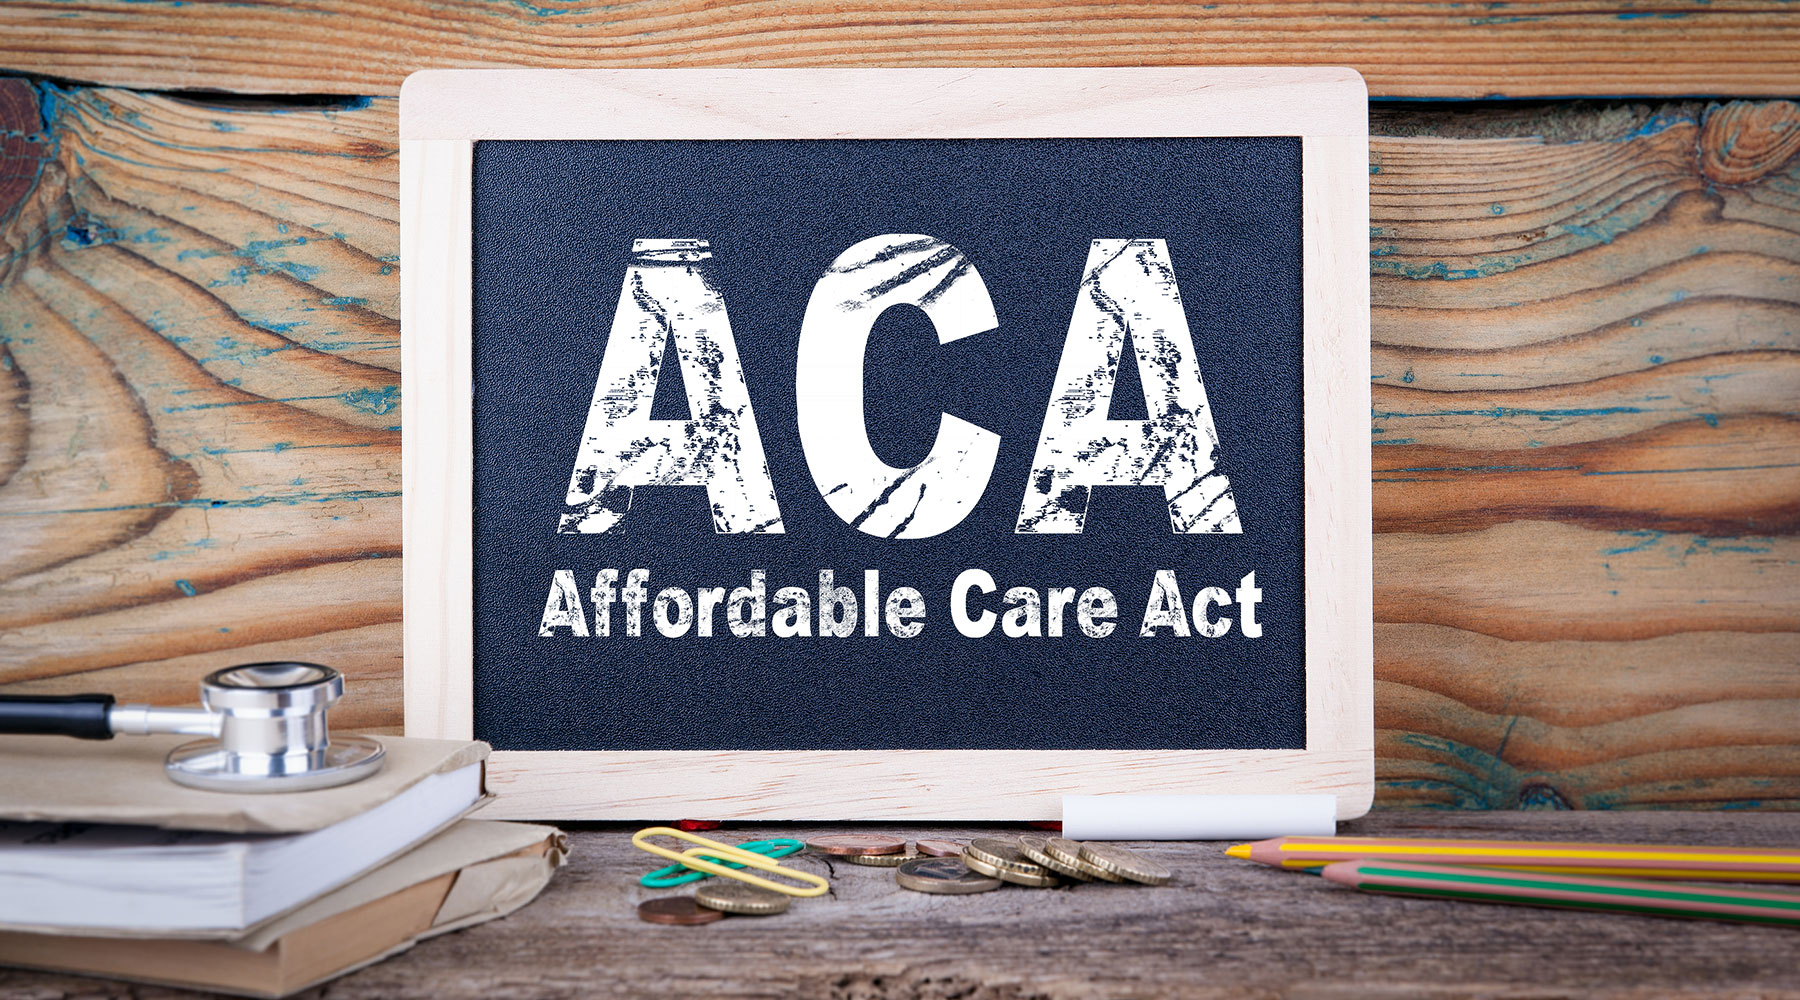 ACA Affordable Care Act written on chalkboard